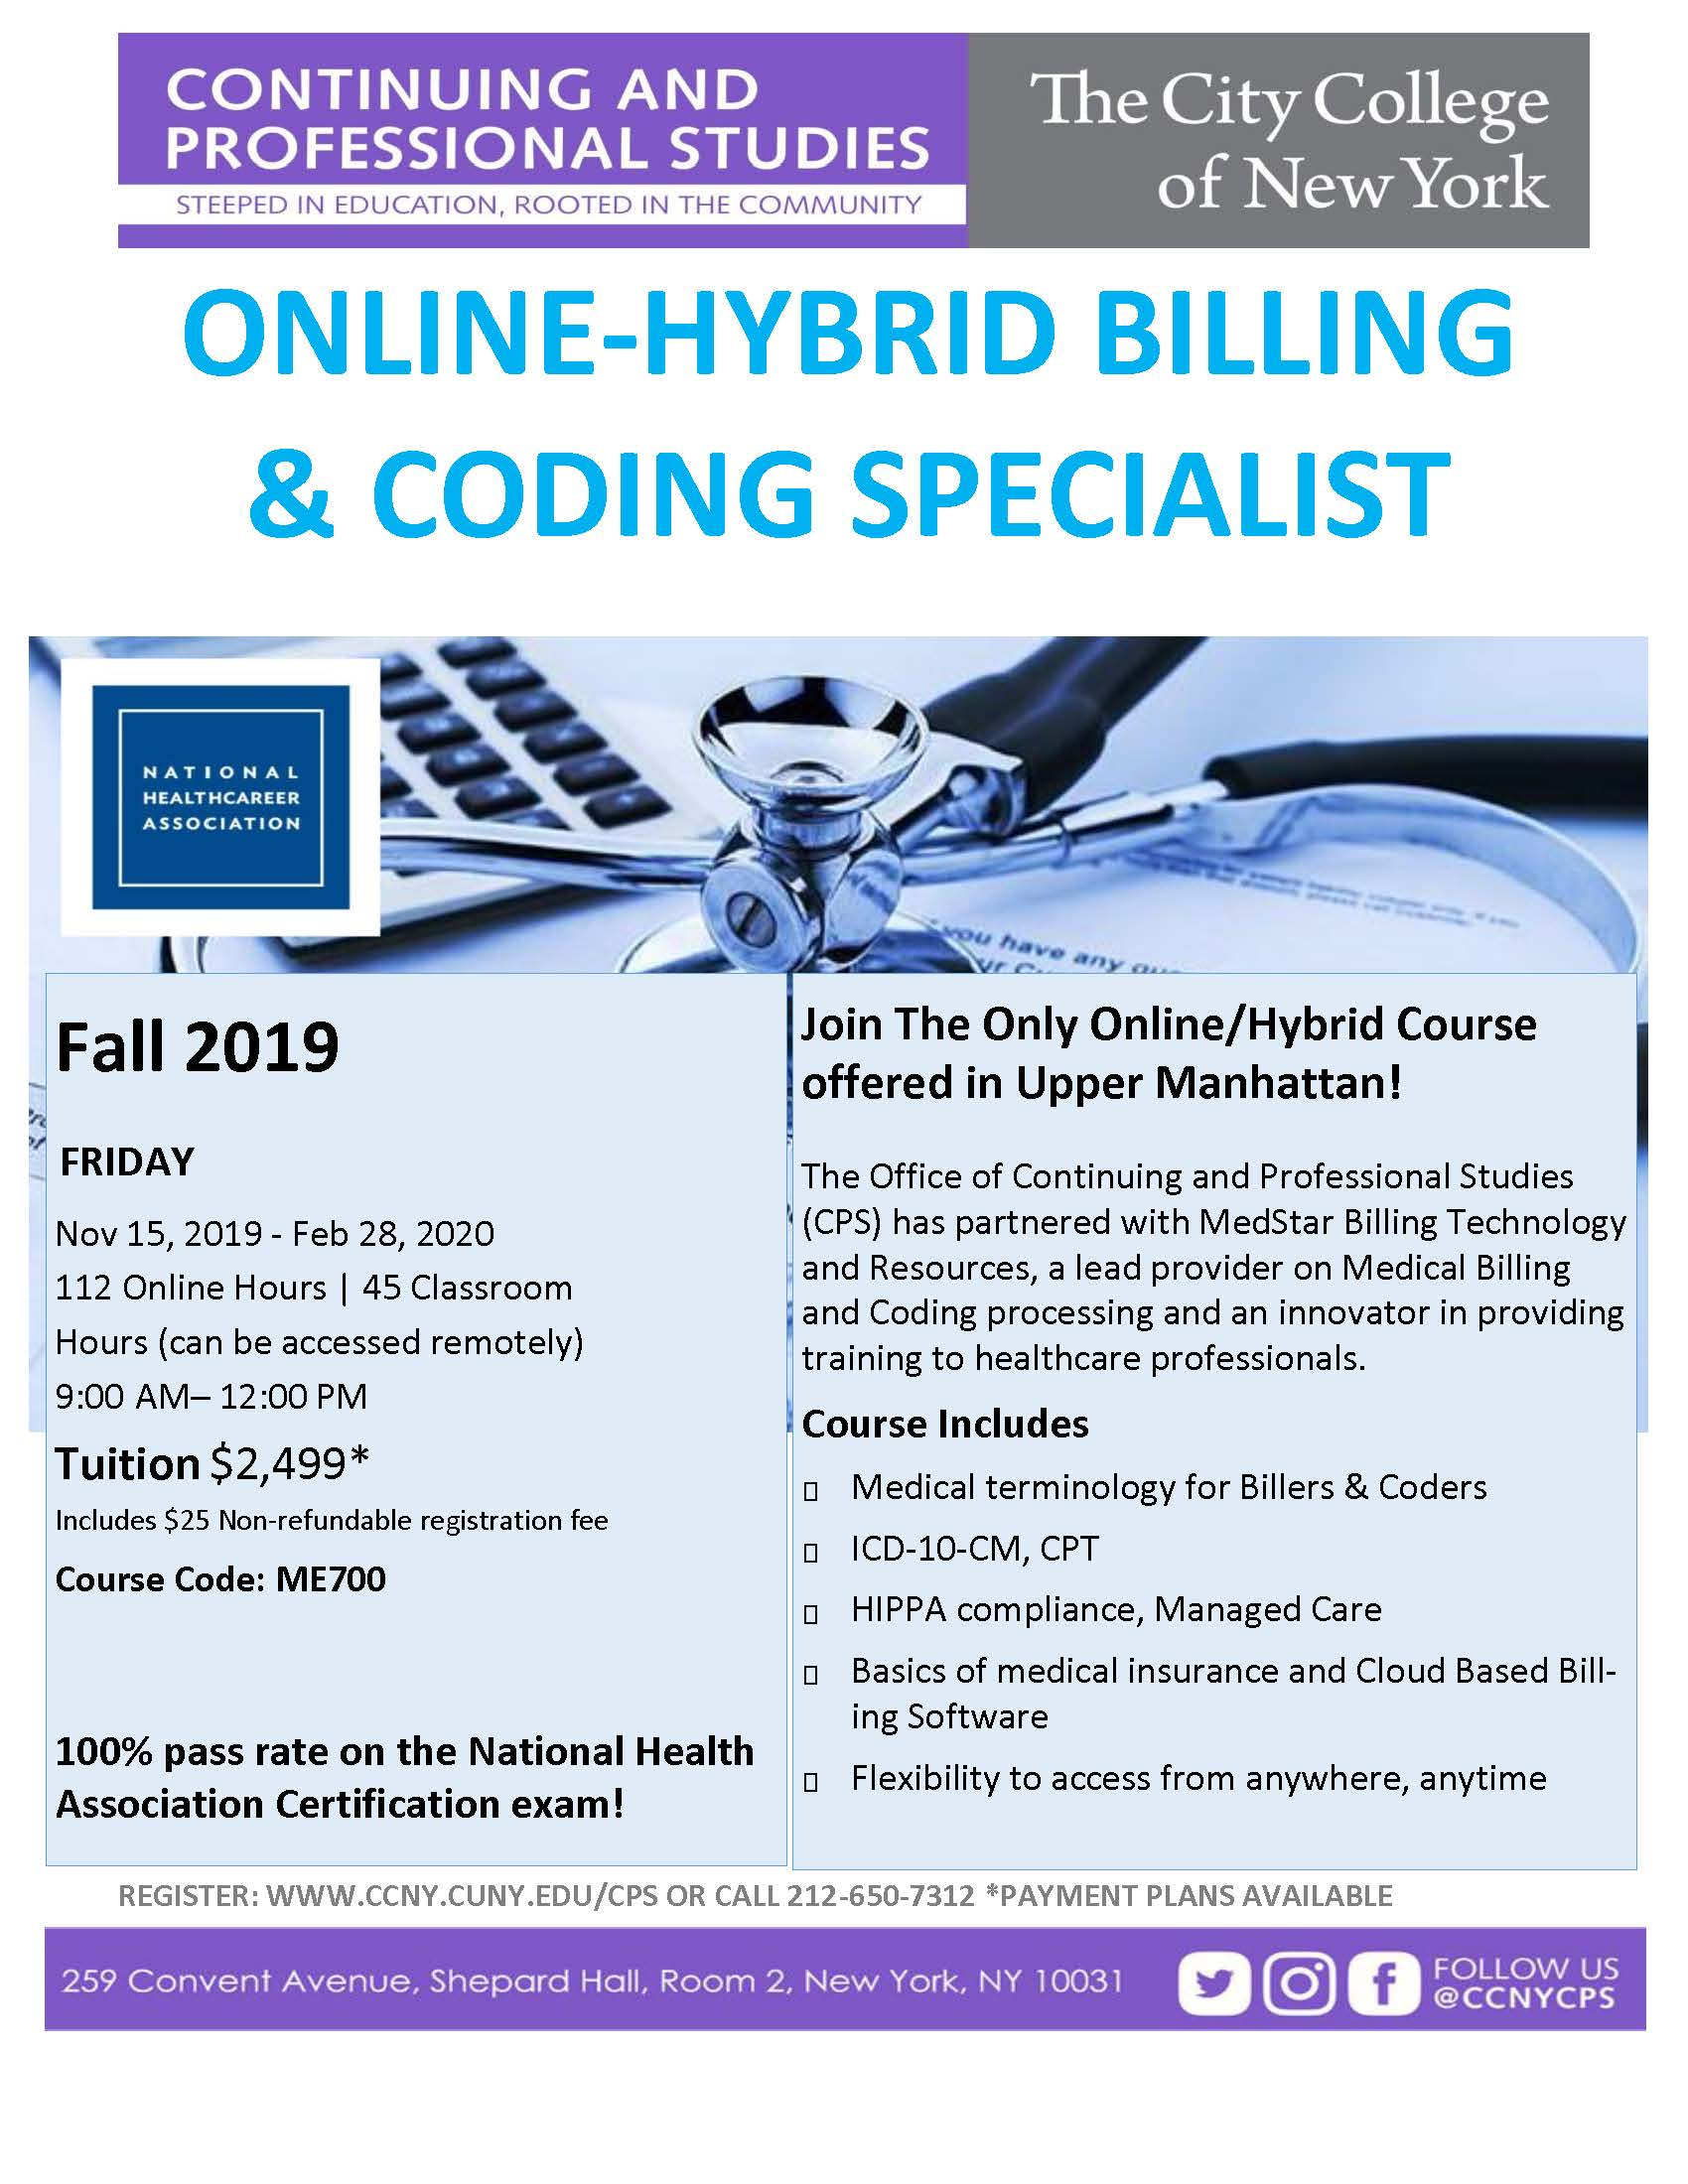 Online/Hybrid Certified Billing & Coding Specialist | The City